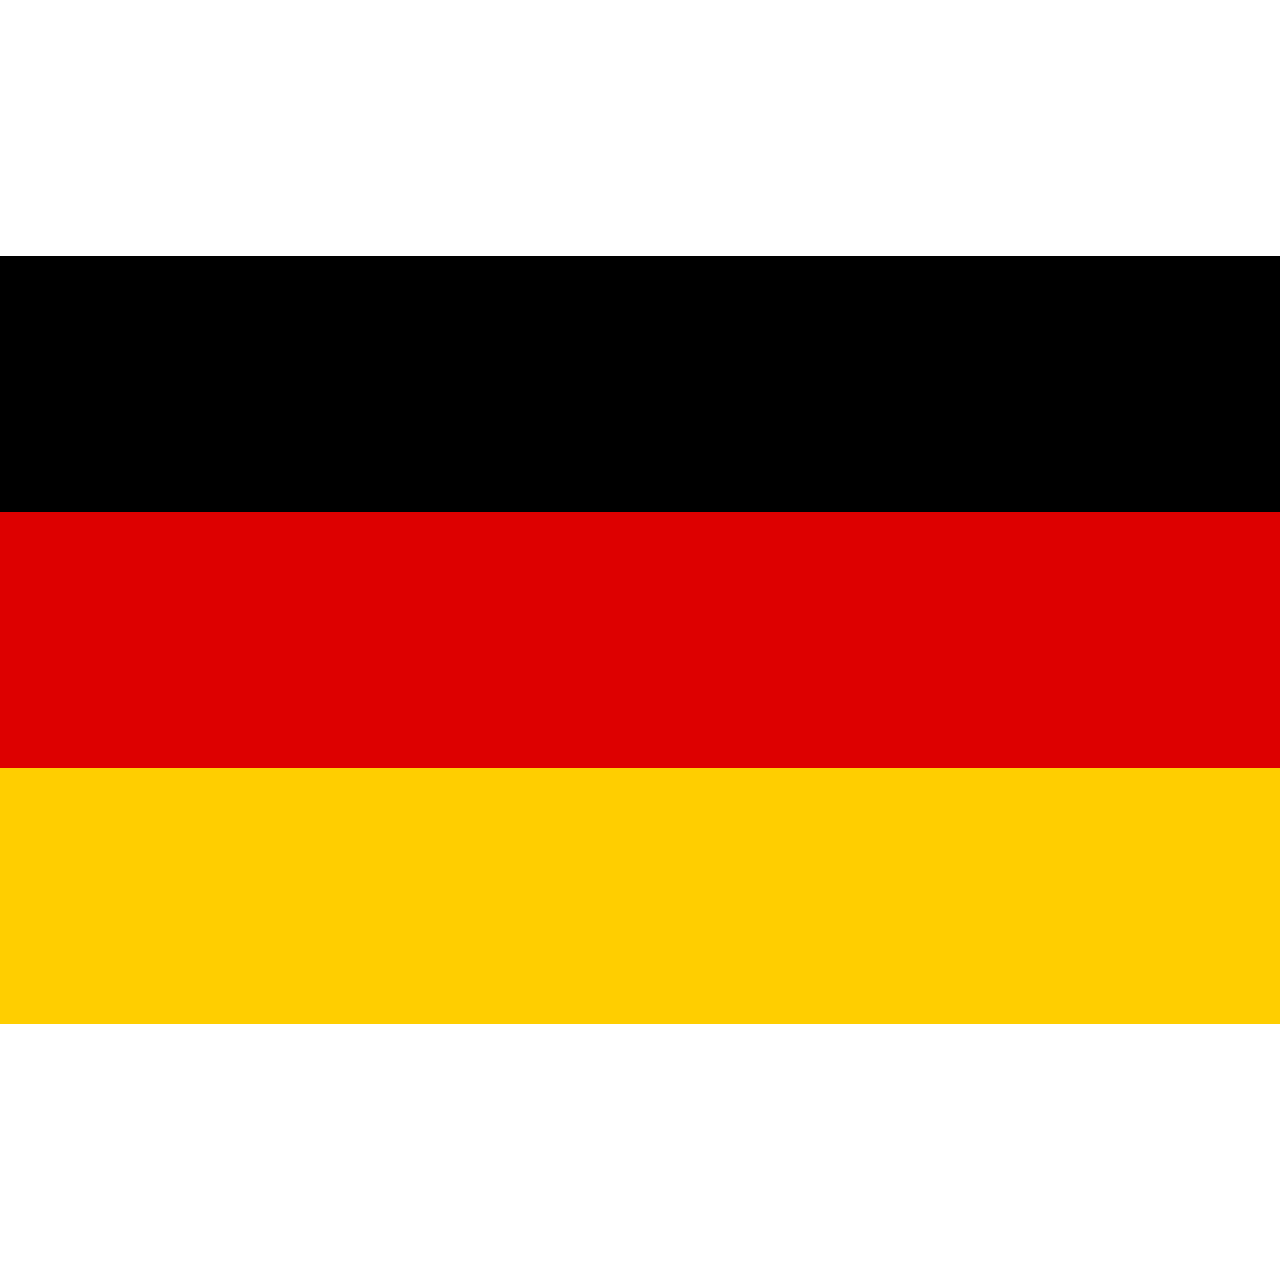 File:GermanIcon.png